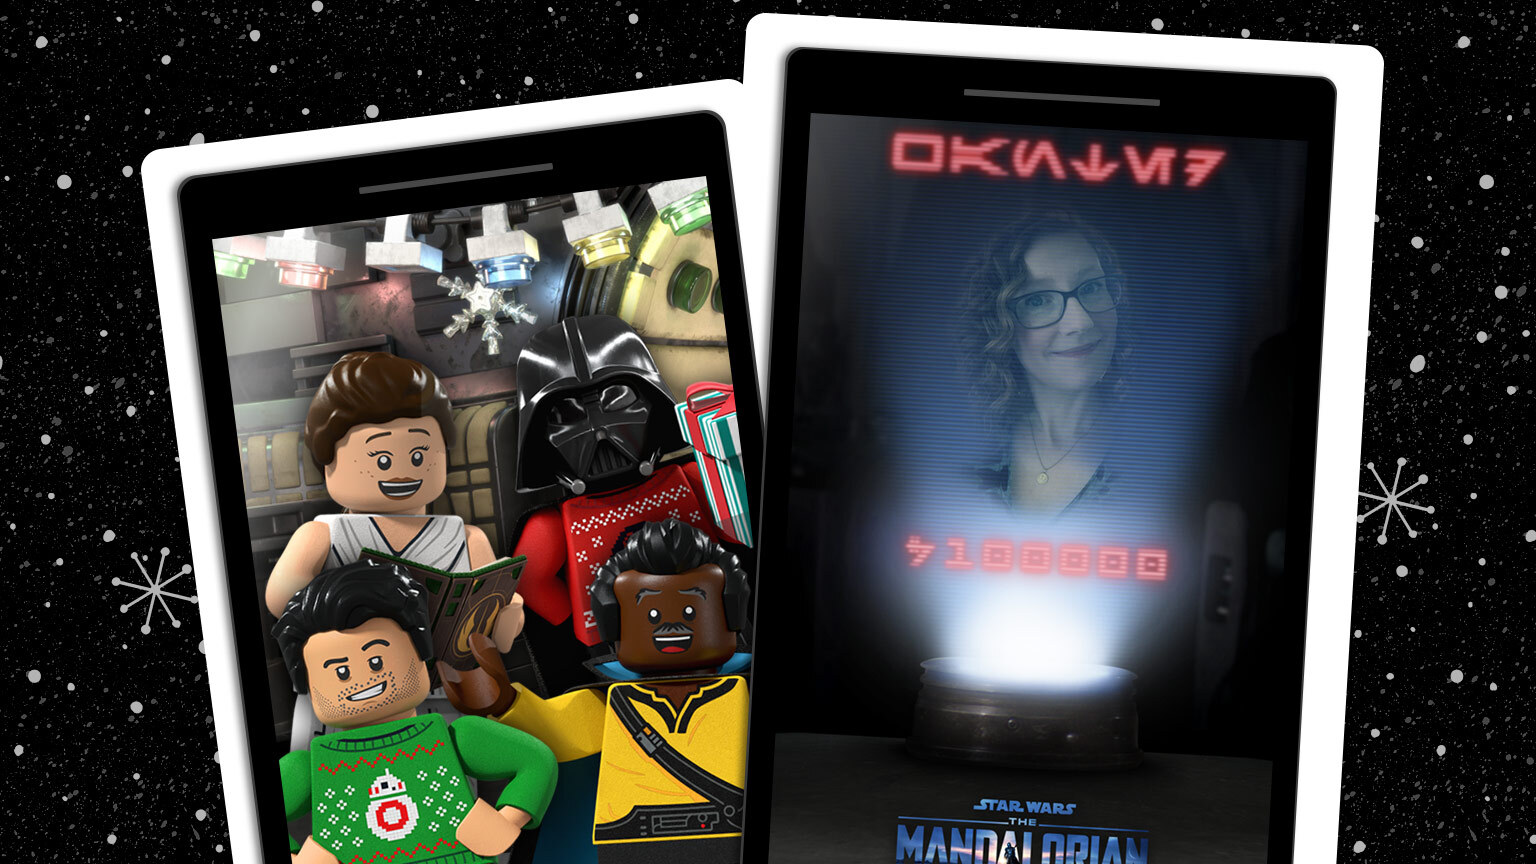 Star Wars App selfie screen and LEGO Star Wars Holiday Special characters